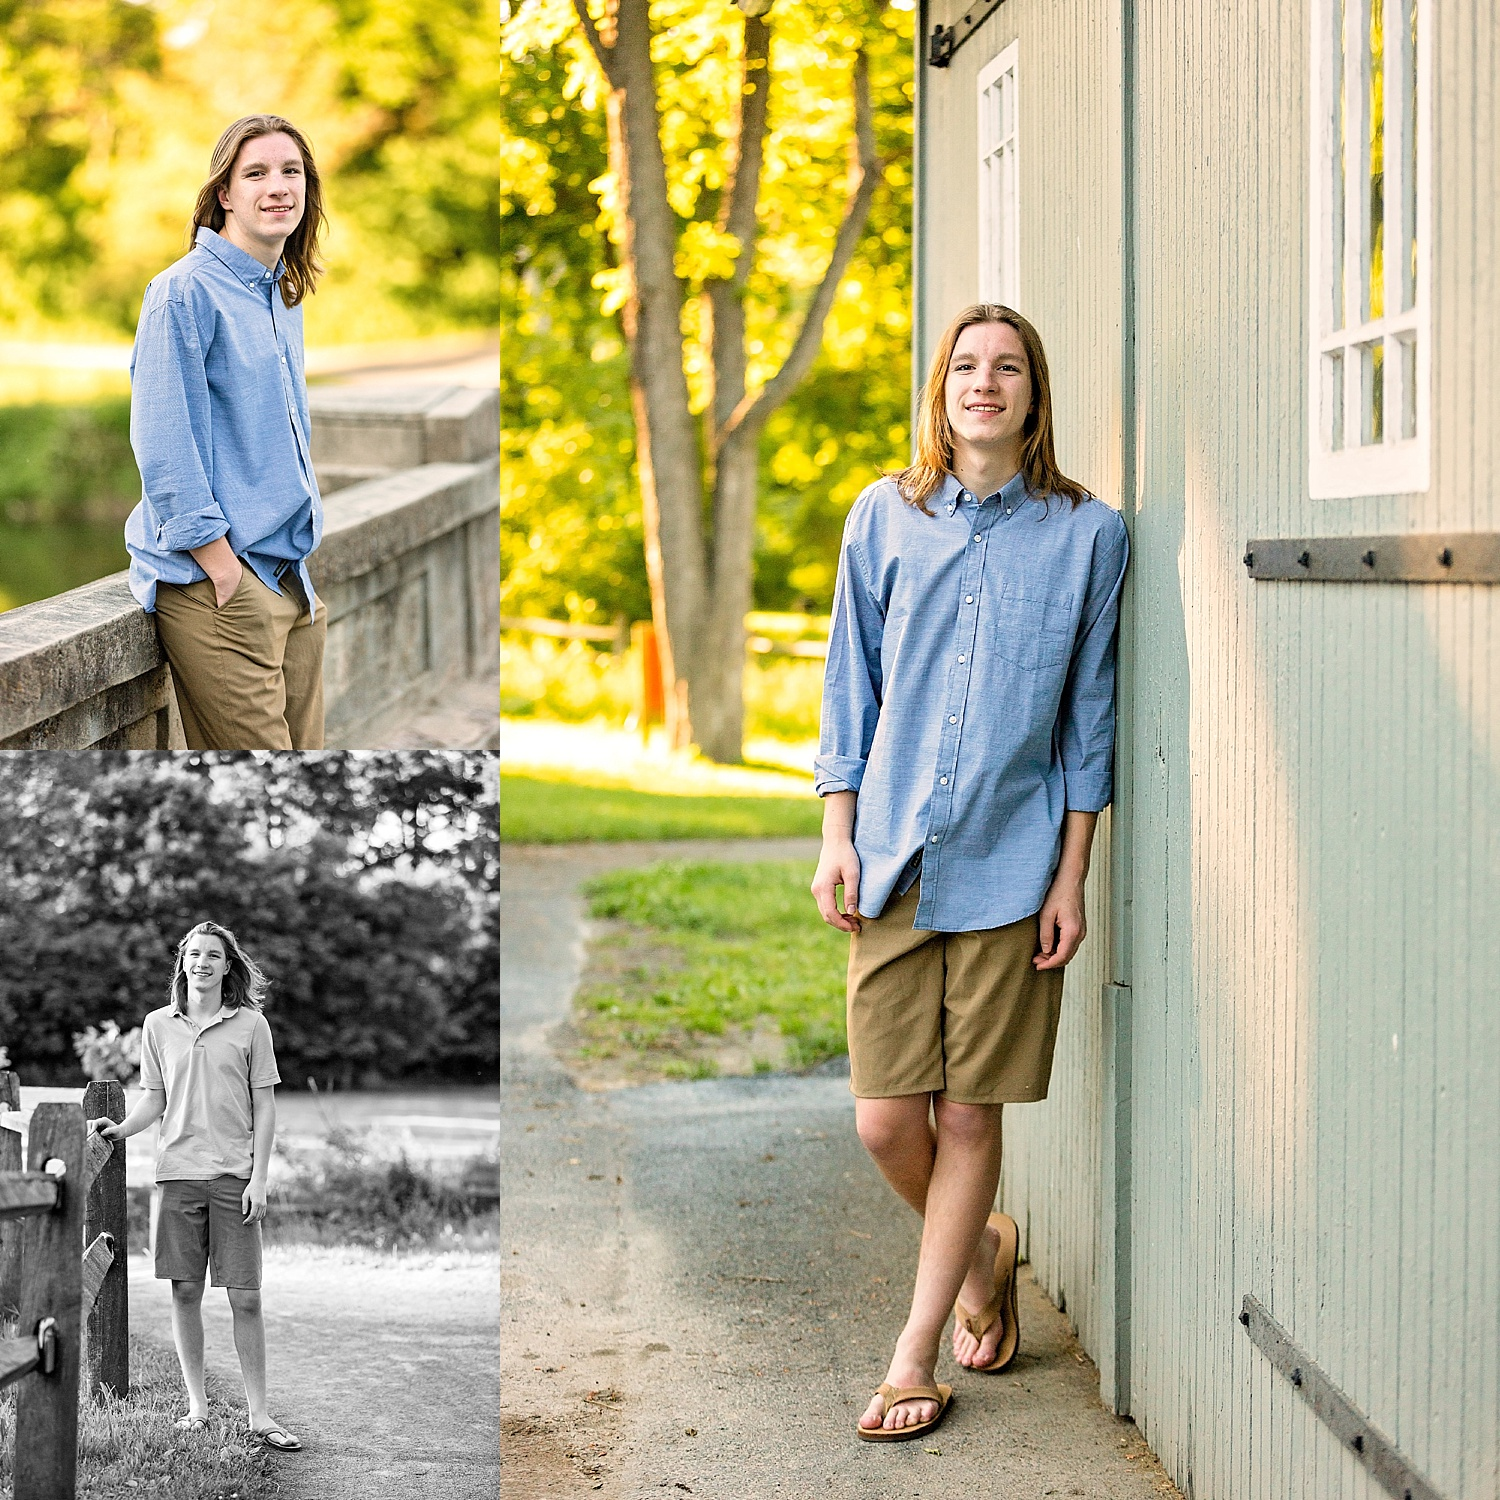 Gring's Mill Berks County High School Senior Photographer